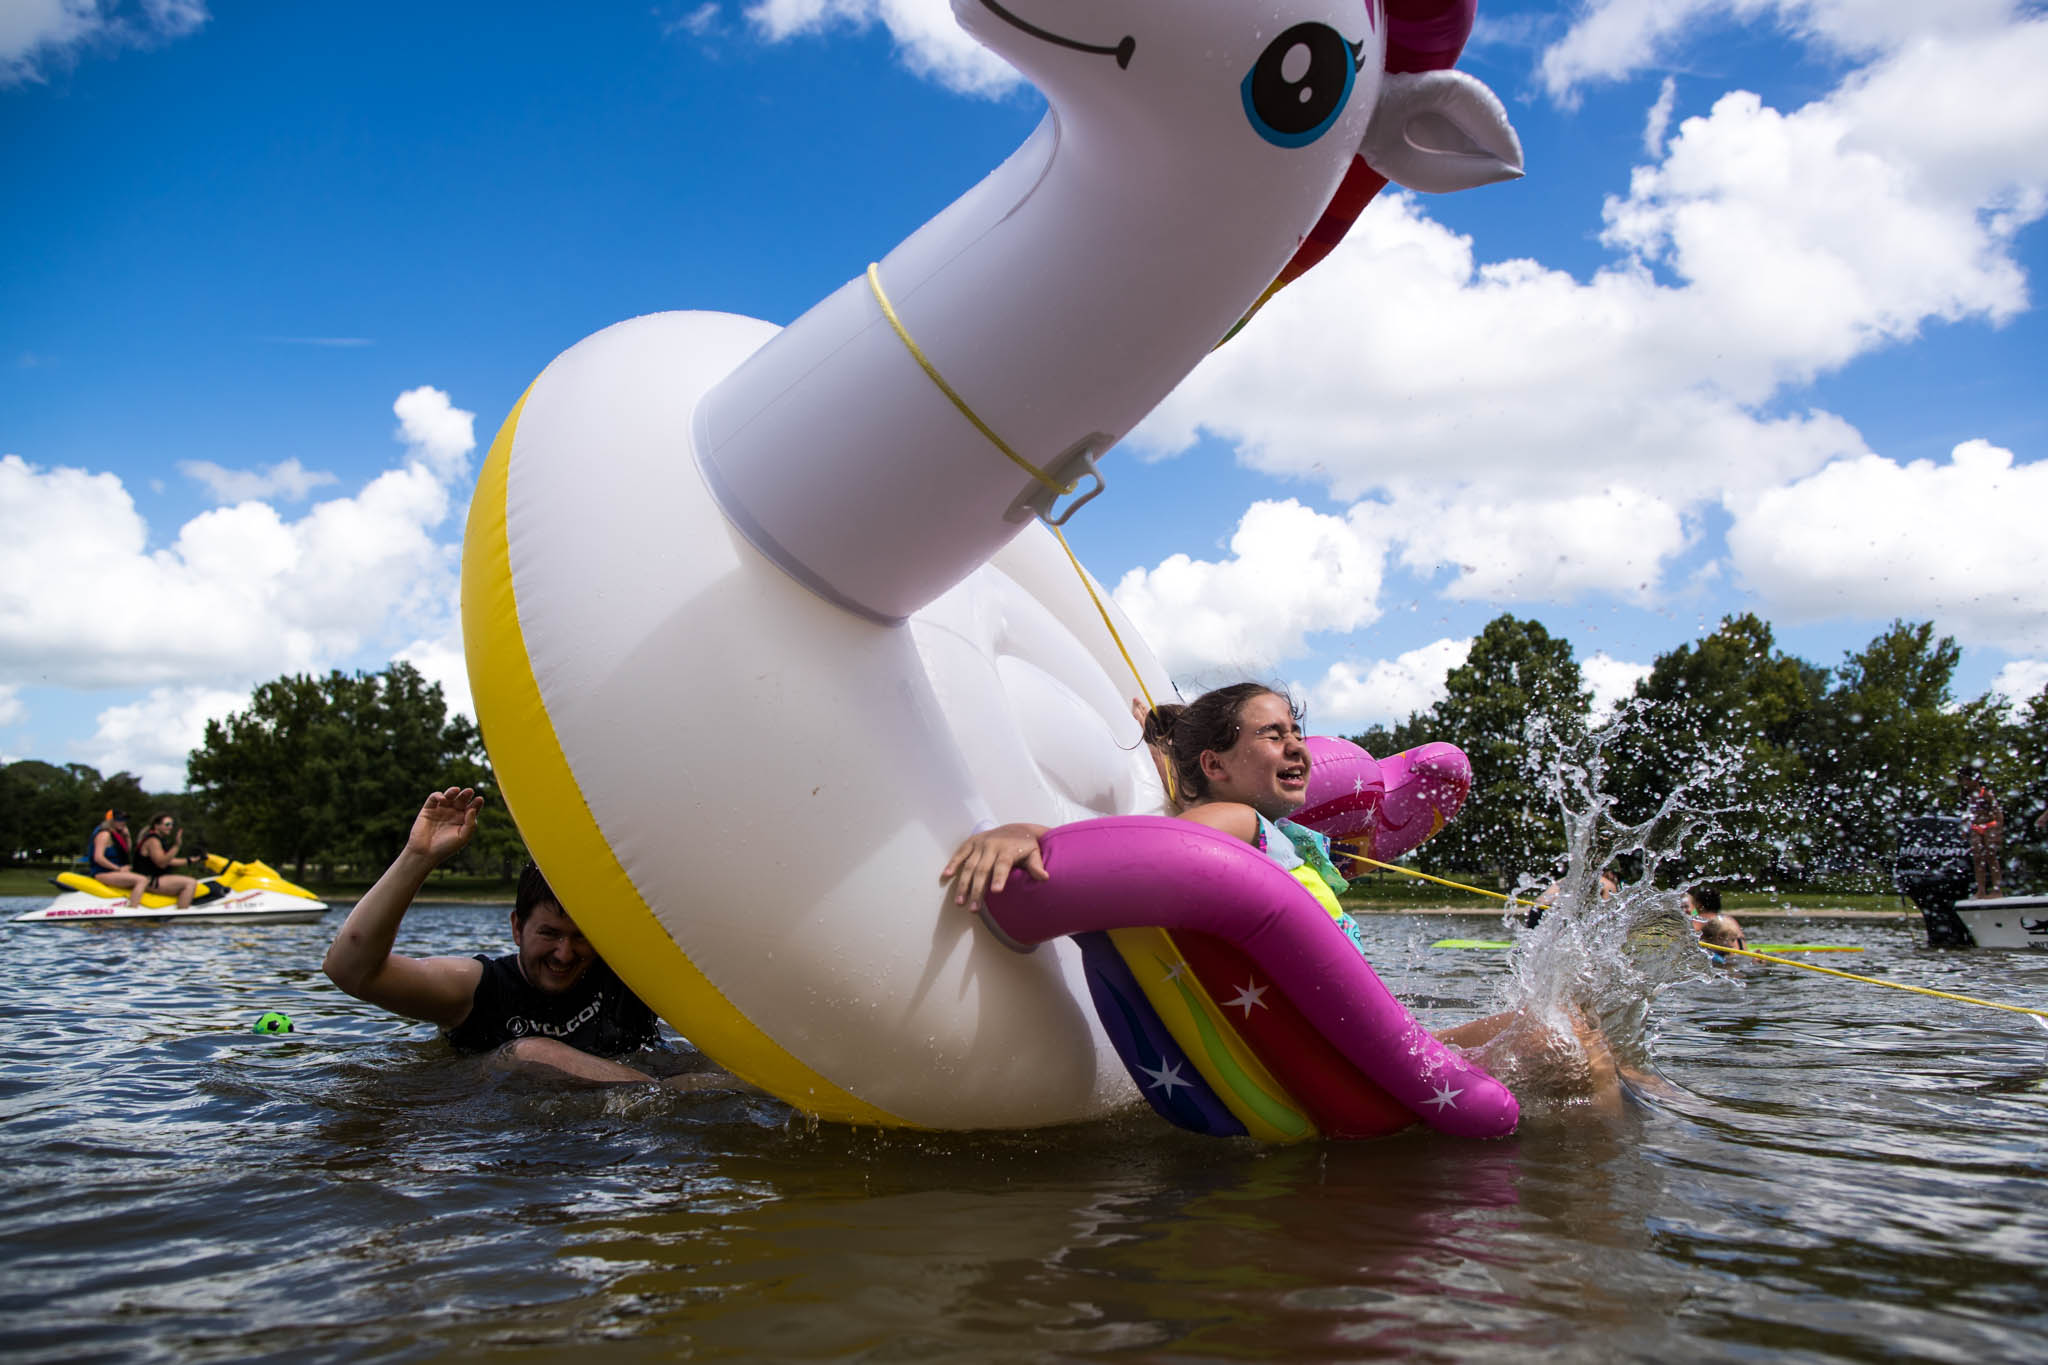 Lawren Rose Photography, a Dallas family photographer, captures a photo when someone is pushing someone else off a float in the lake